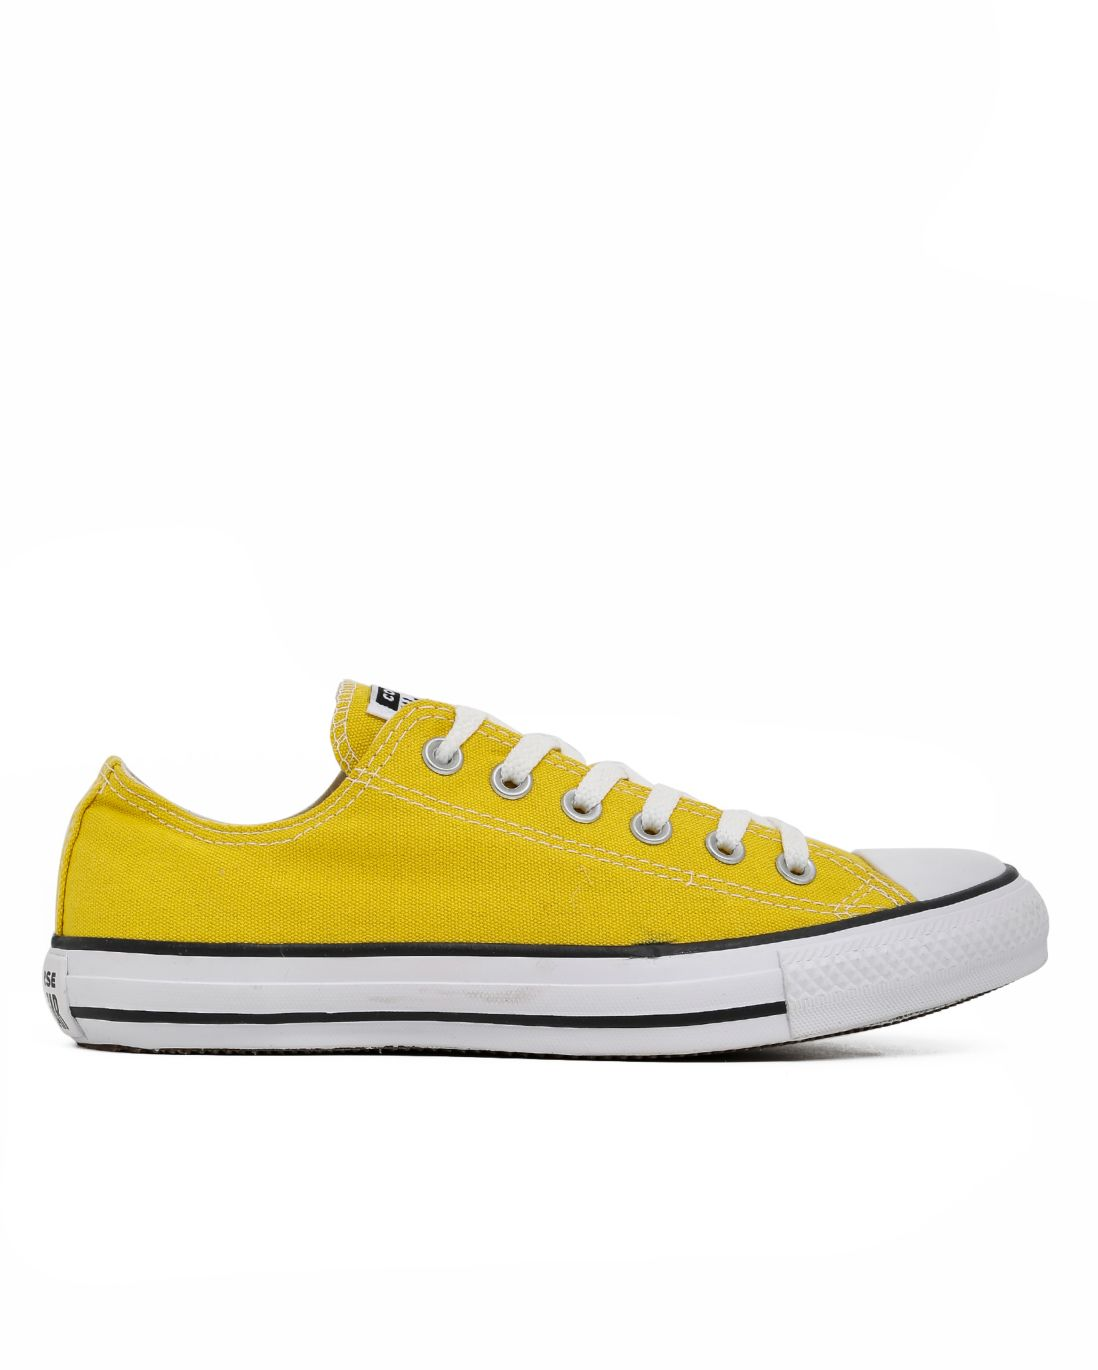 Tênis Converse All Star Chuck Taylor Amarelo - CT04200034